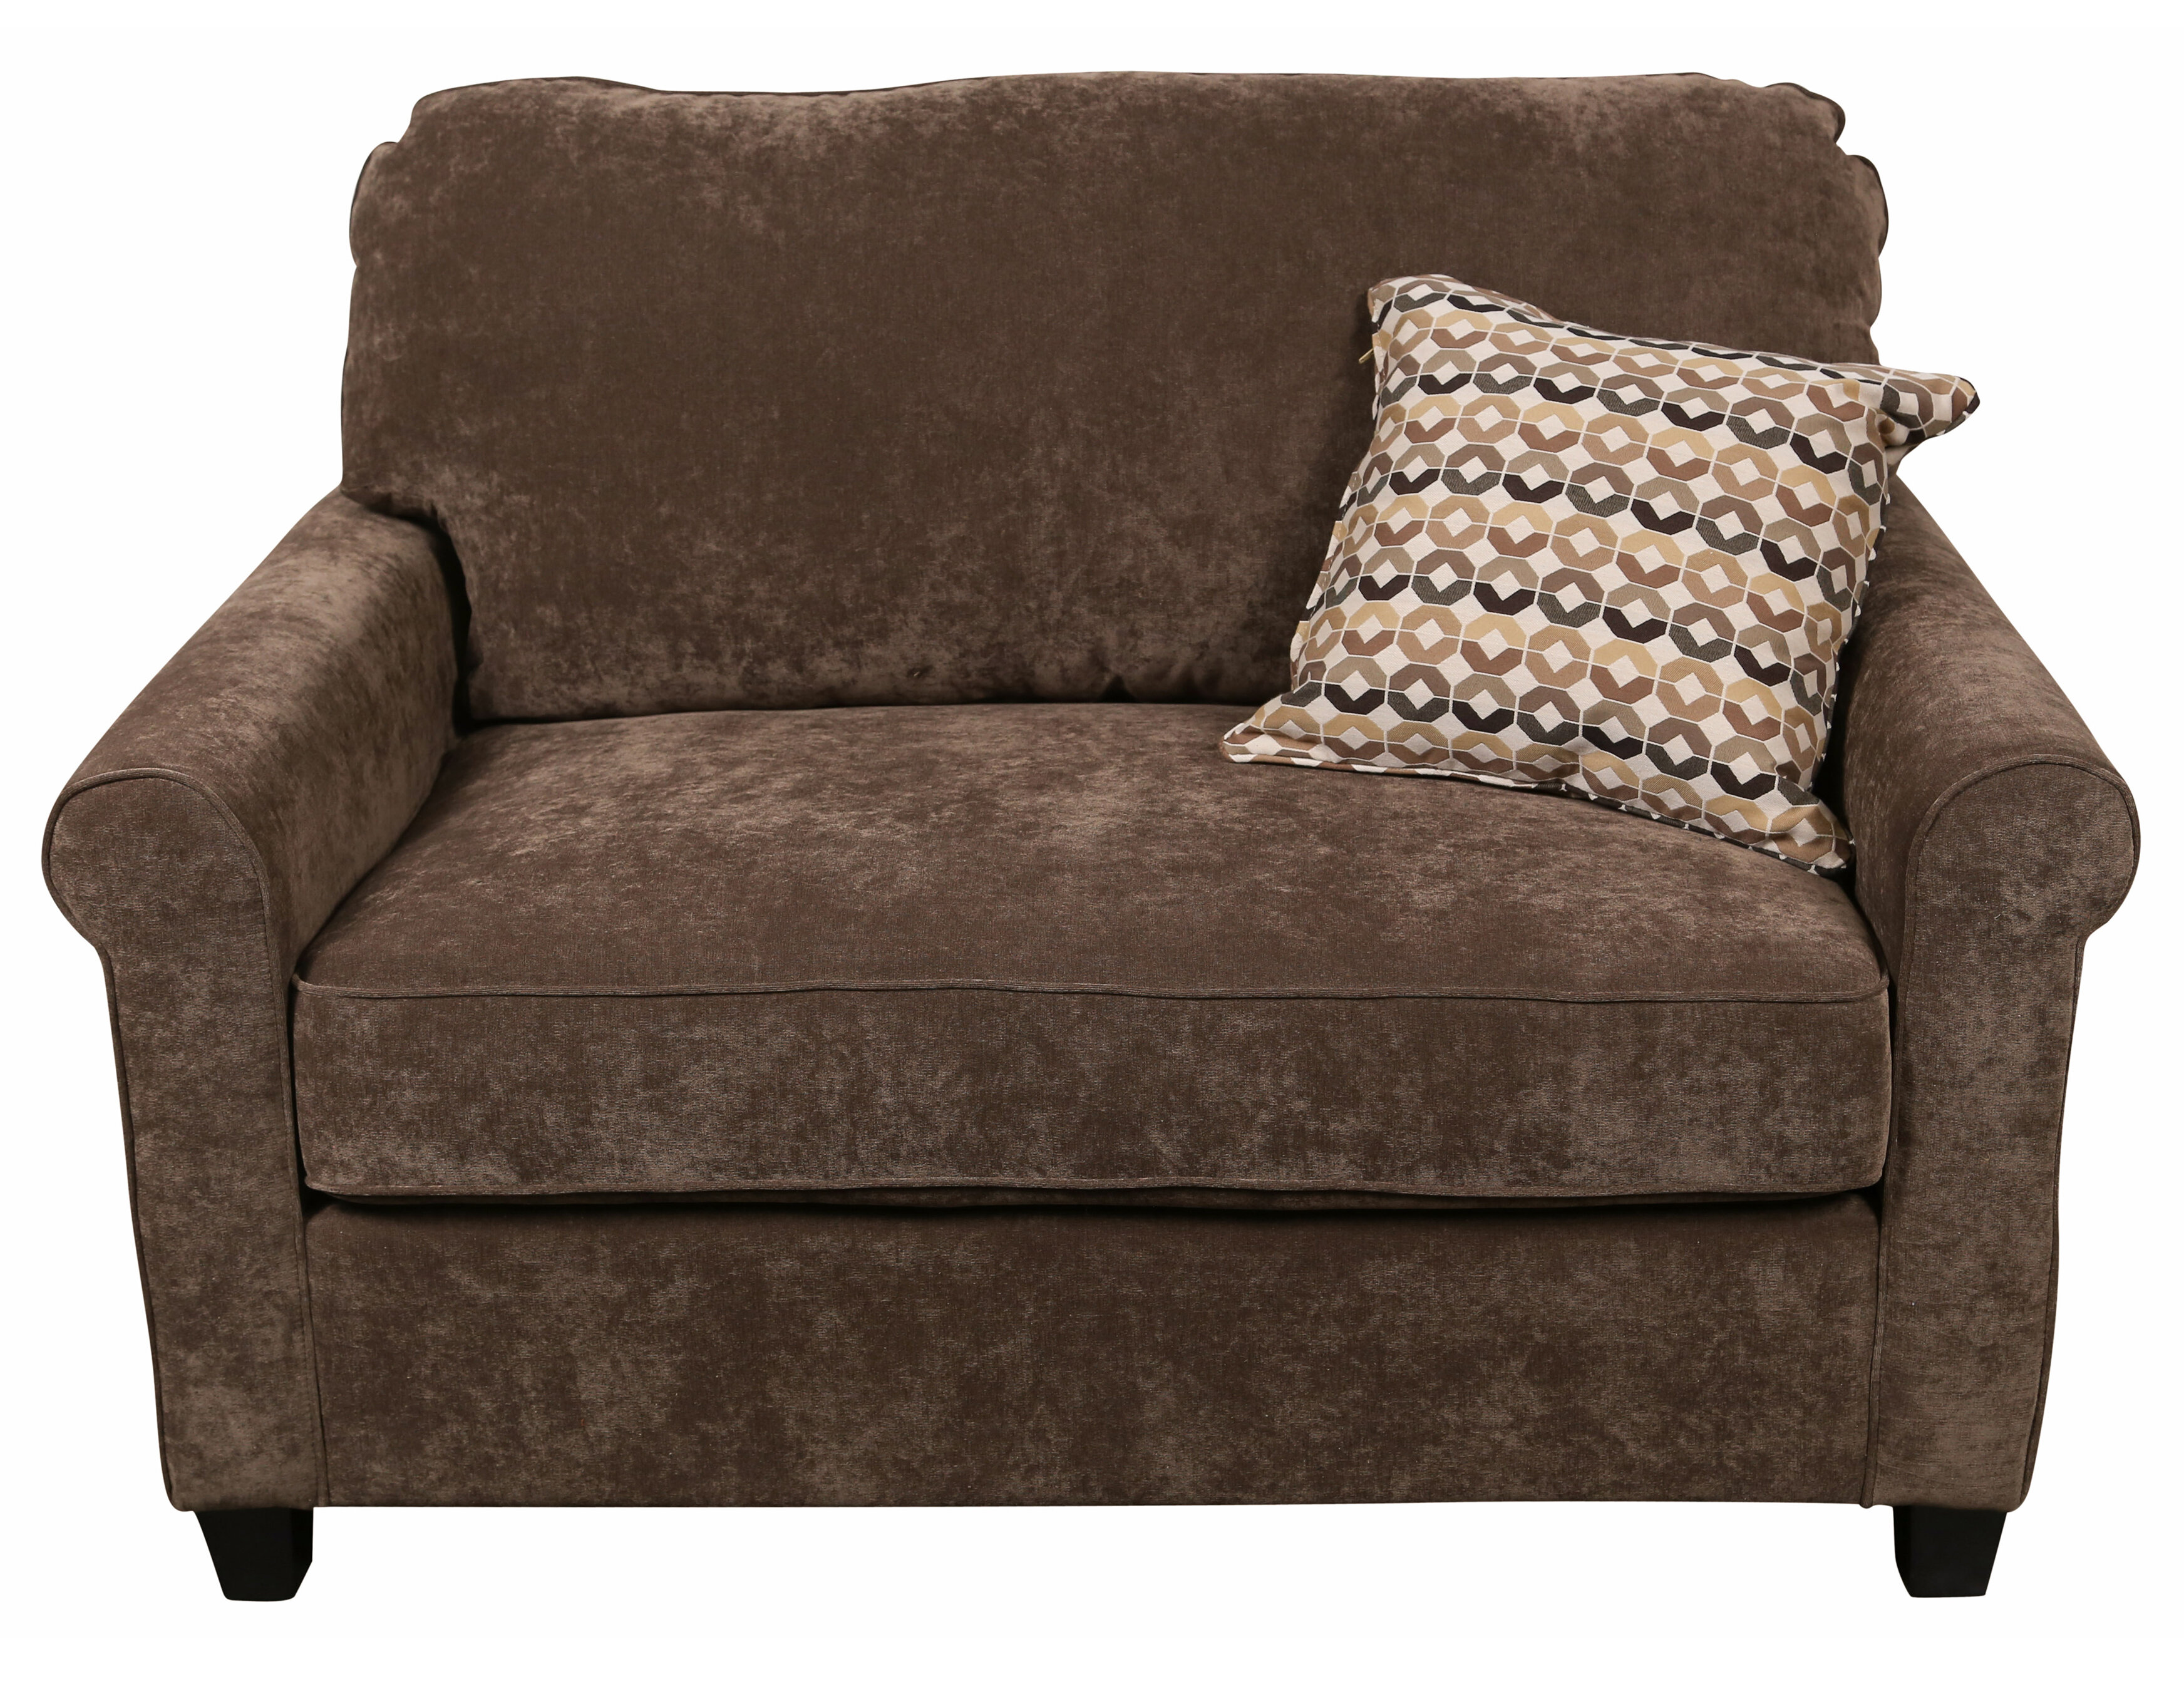 frost jaymar vignette bed collection double fit empire sofa sleeper front chair arm sofasbeds contemporary style